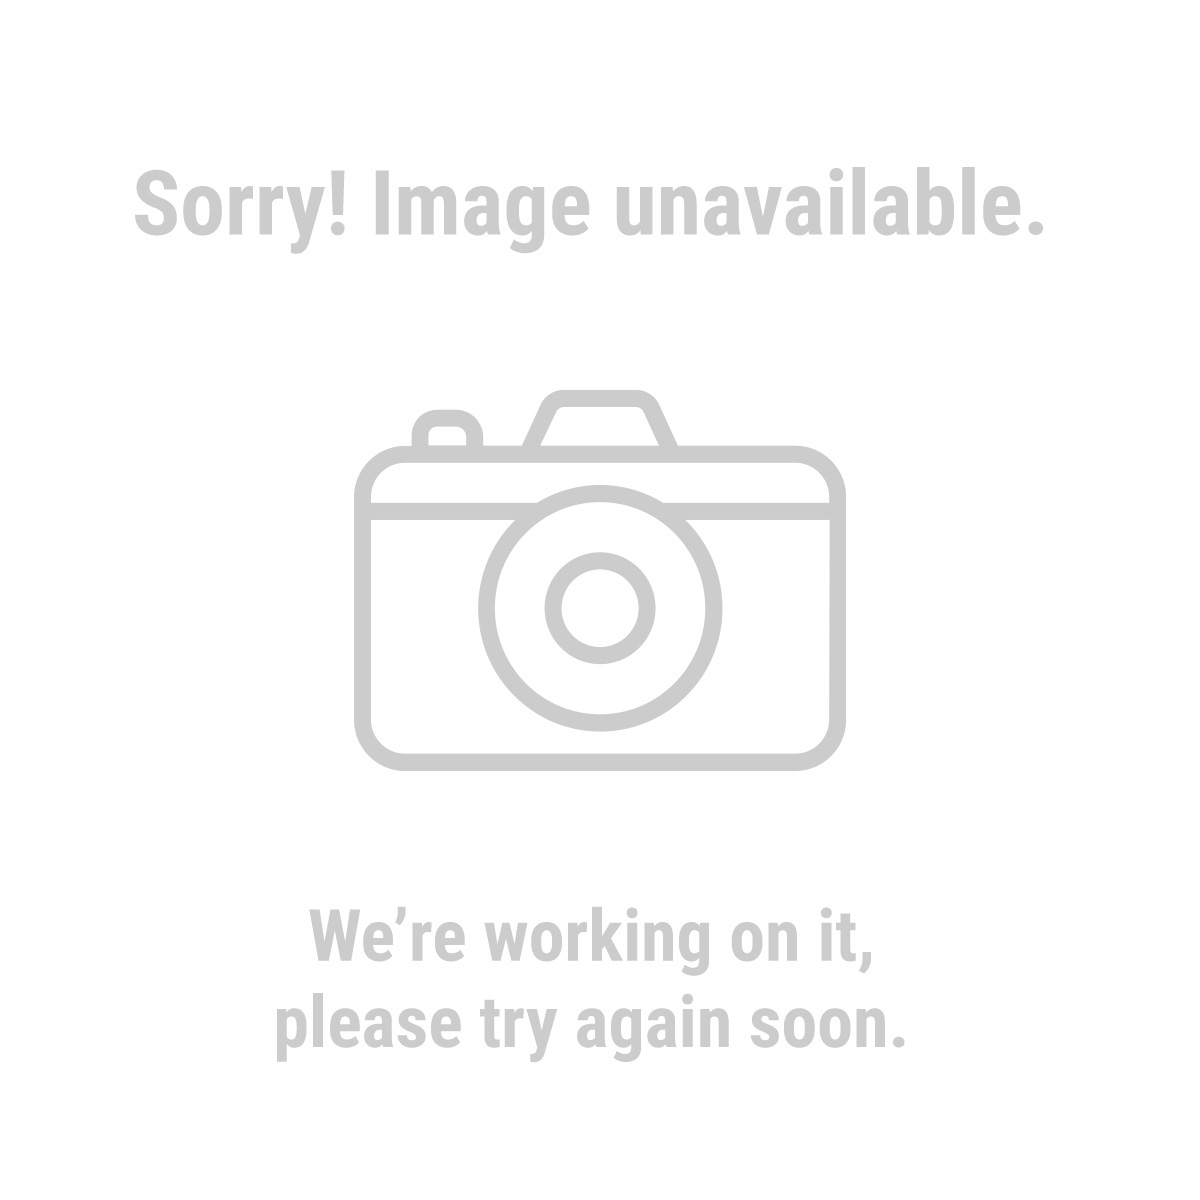 Cen-Tech 60725 Non-Contact Infrared Thermometer with Laser Targeting